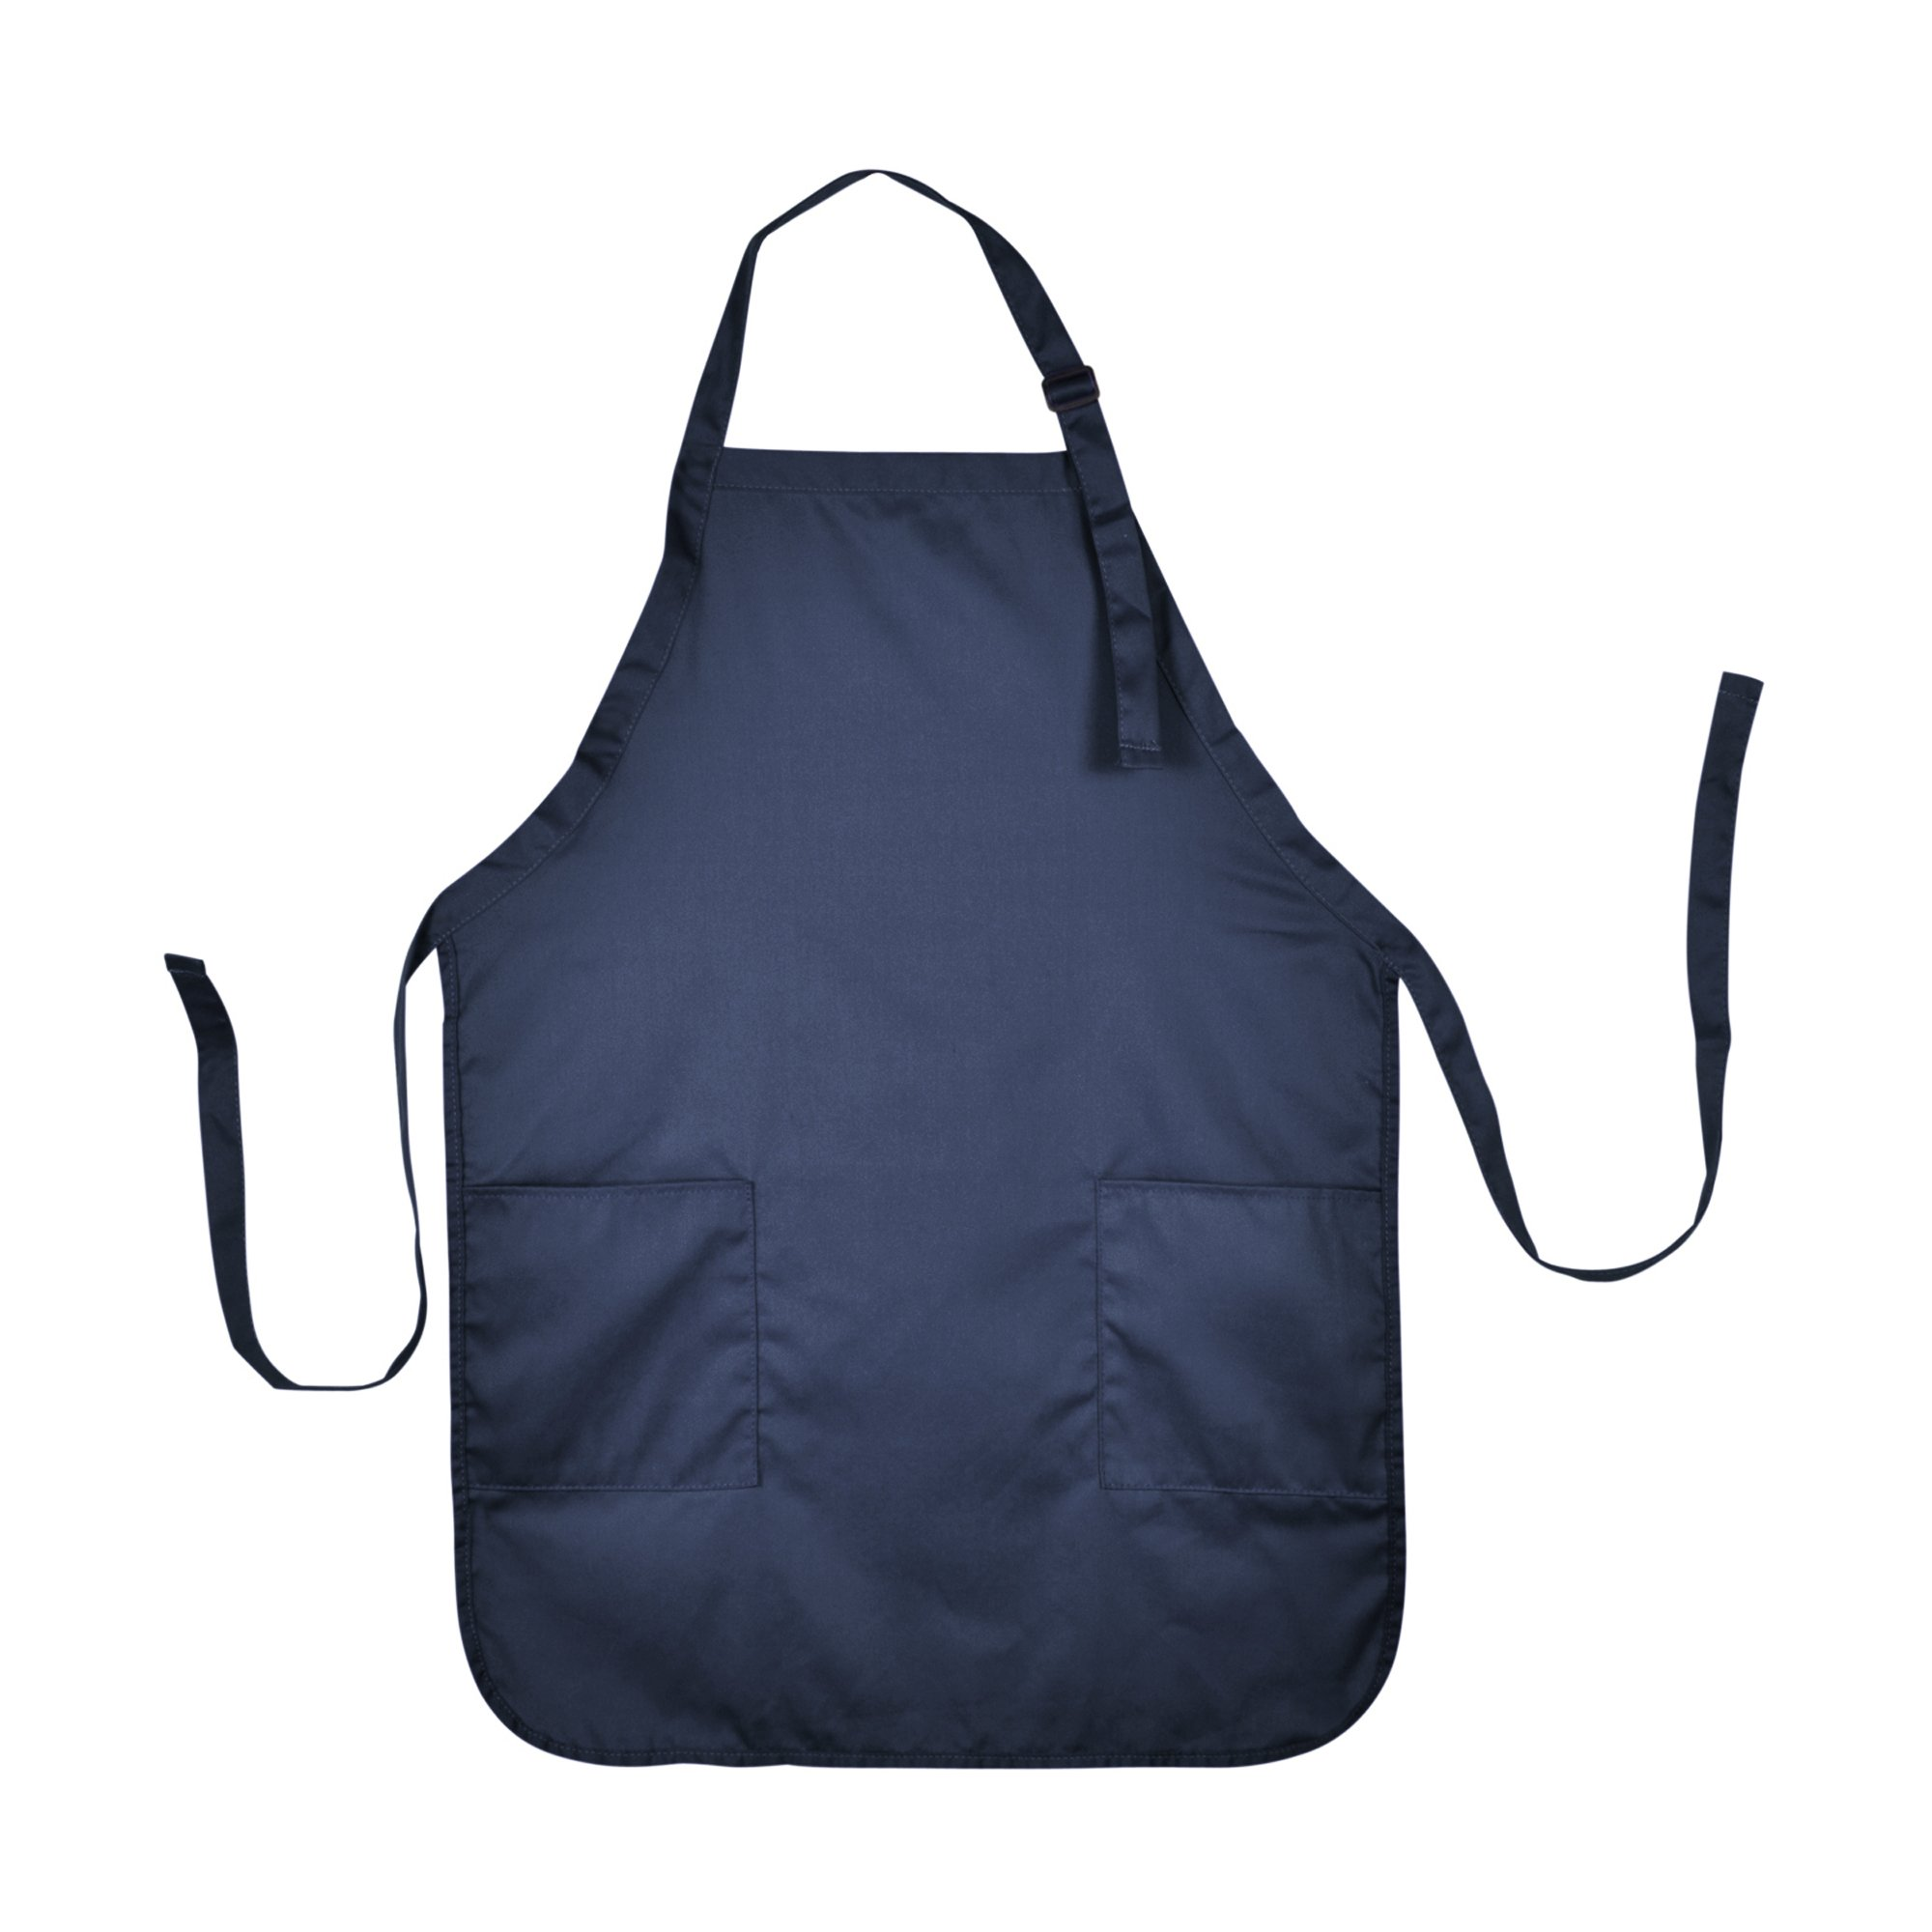 Apron Commercial Restaurant Home Bib Spun Poly Cotton Kitchen Aprons (2 Pockets) in Navy Blue 72 PACK